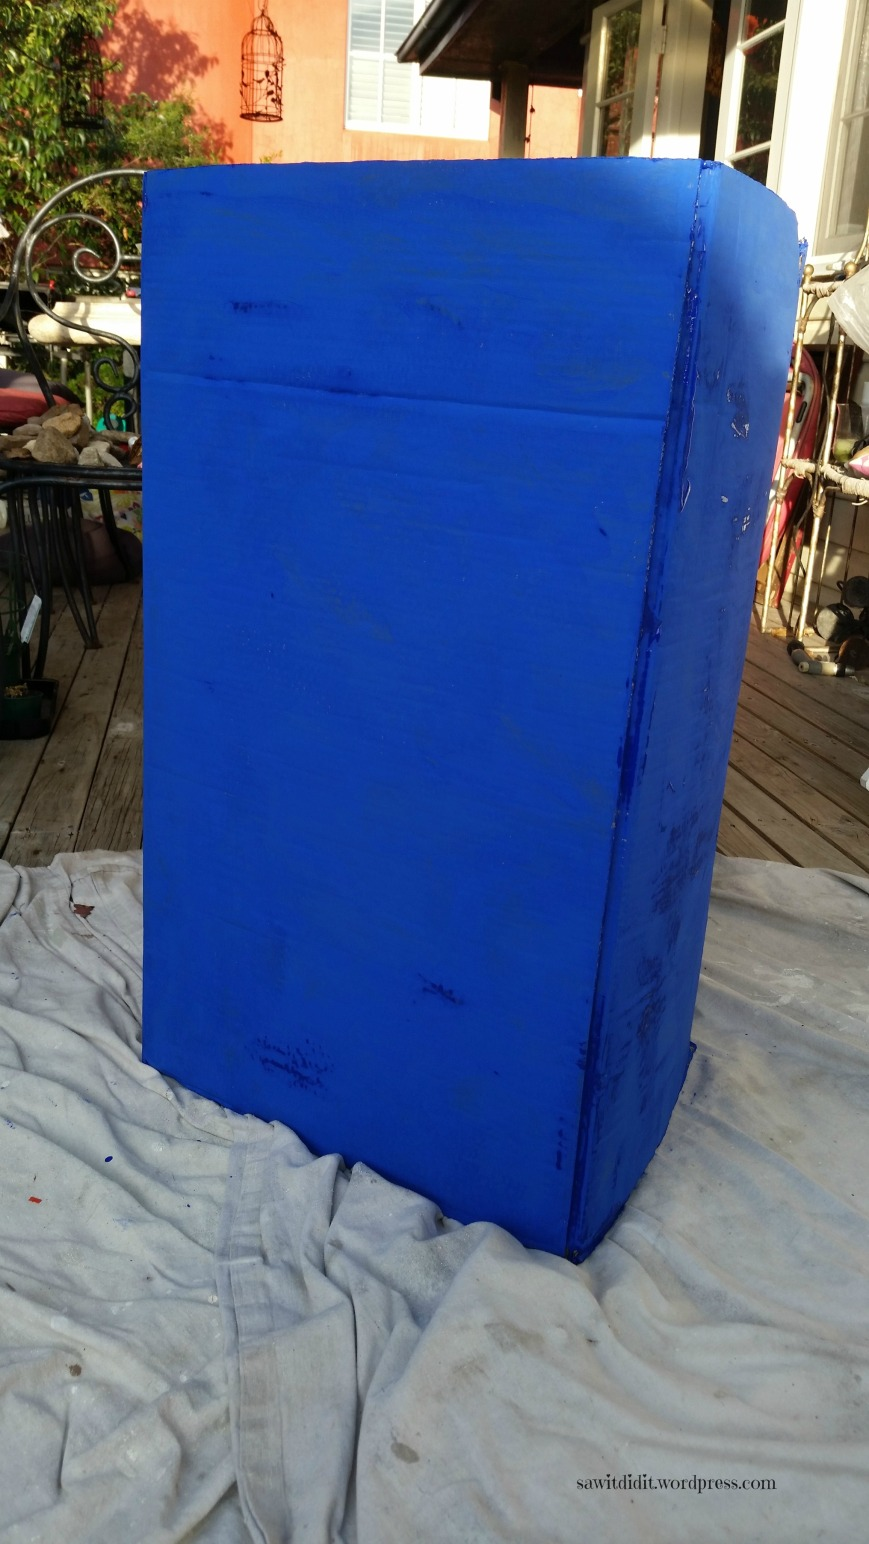 TARDIS blue box